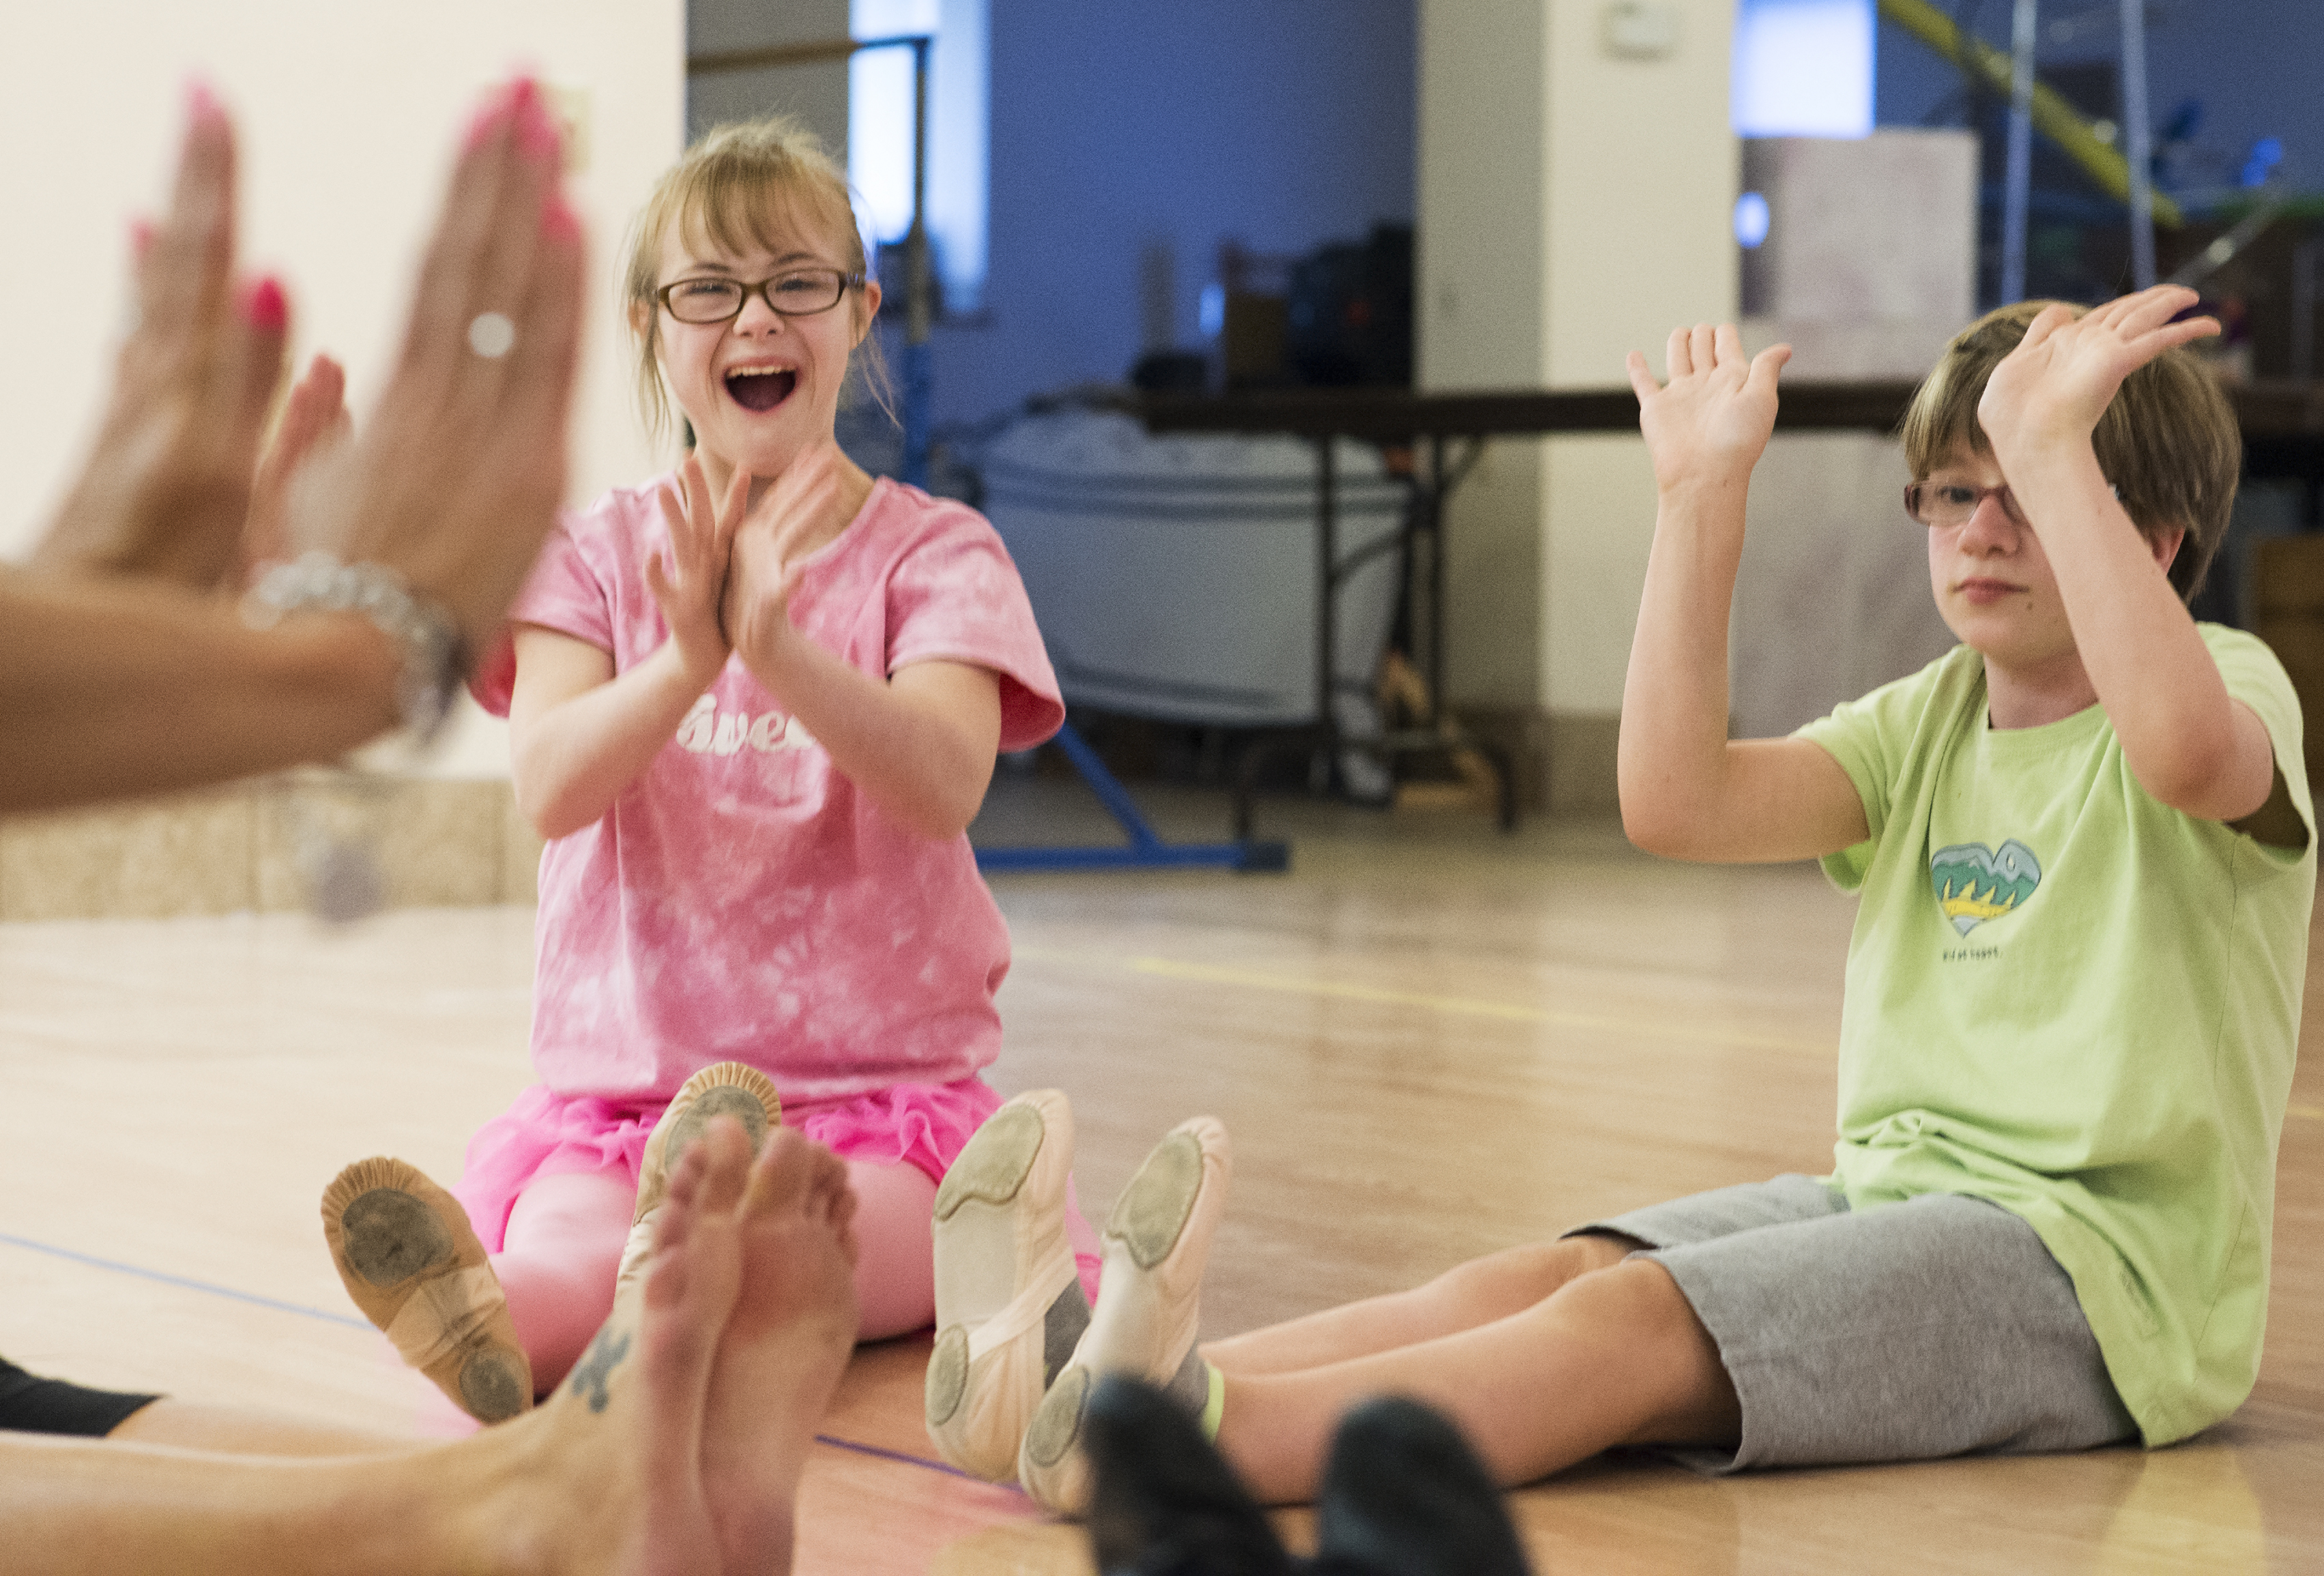 Special Needs Class Gives Children Chance to Dance